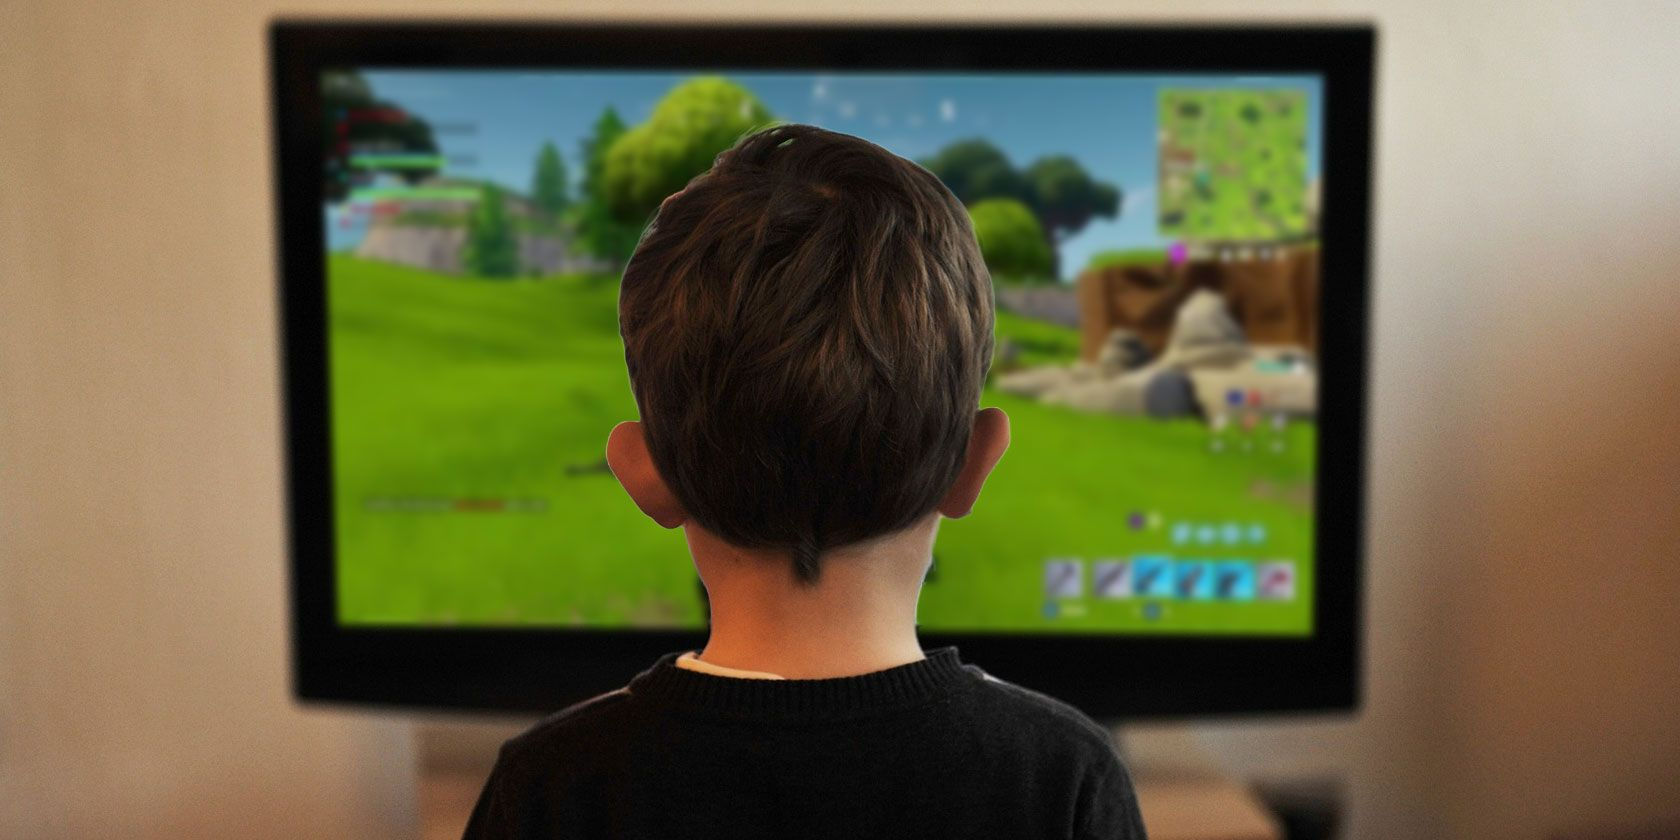 Gaming and Grooming: How Minecraft and Fortnite Could be Dangerous